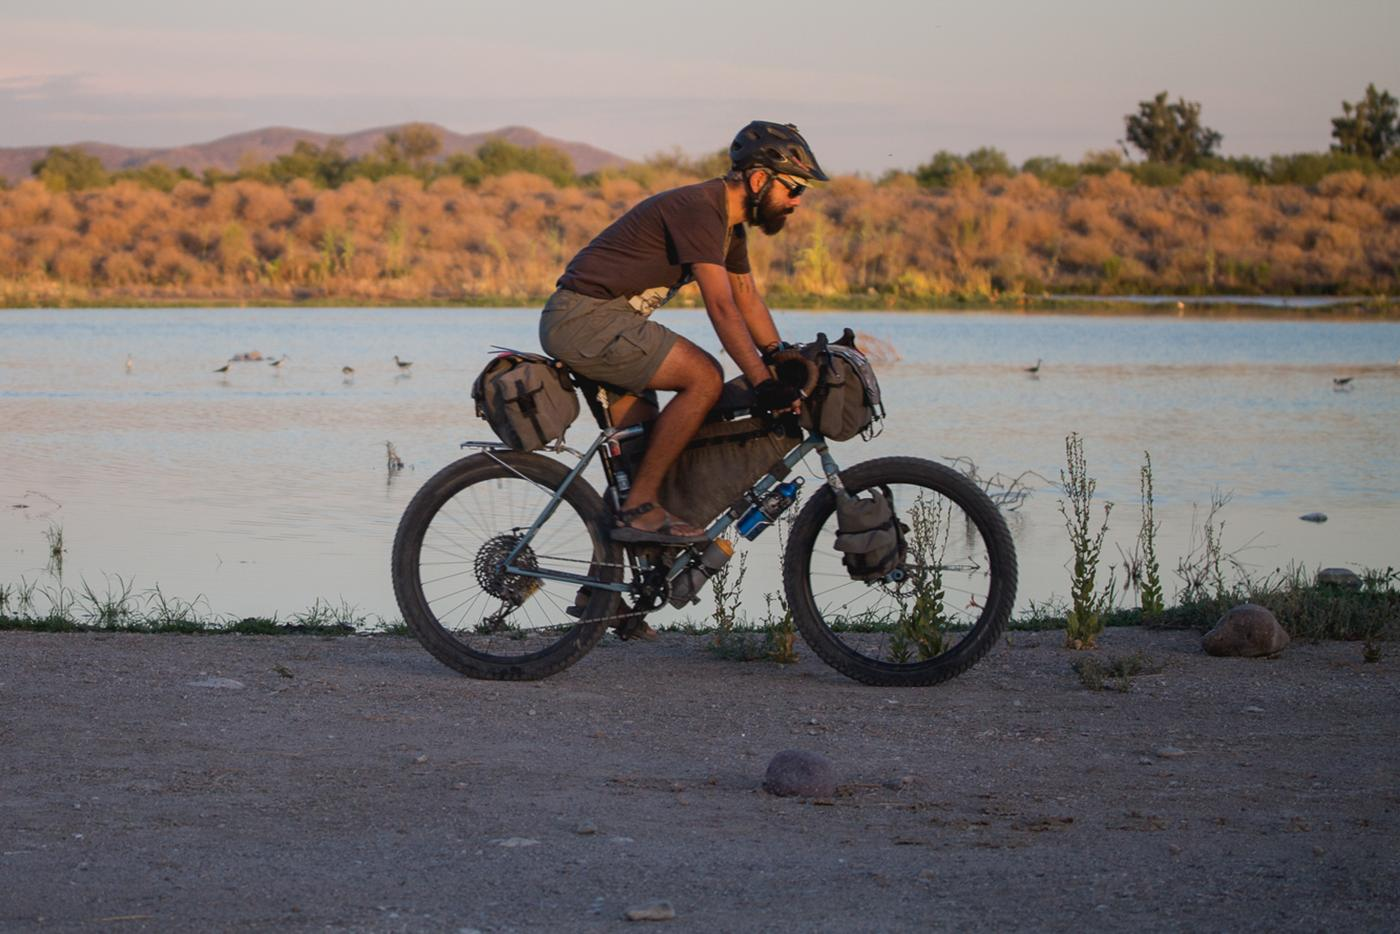 Two Years and a Few Falls on the Ron's Bikes Dirt Tourer